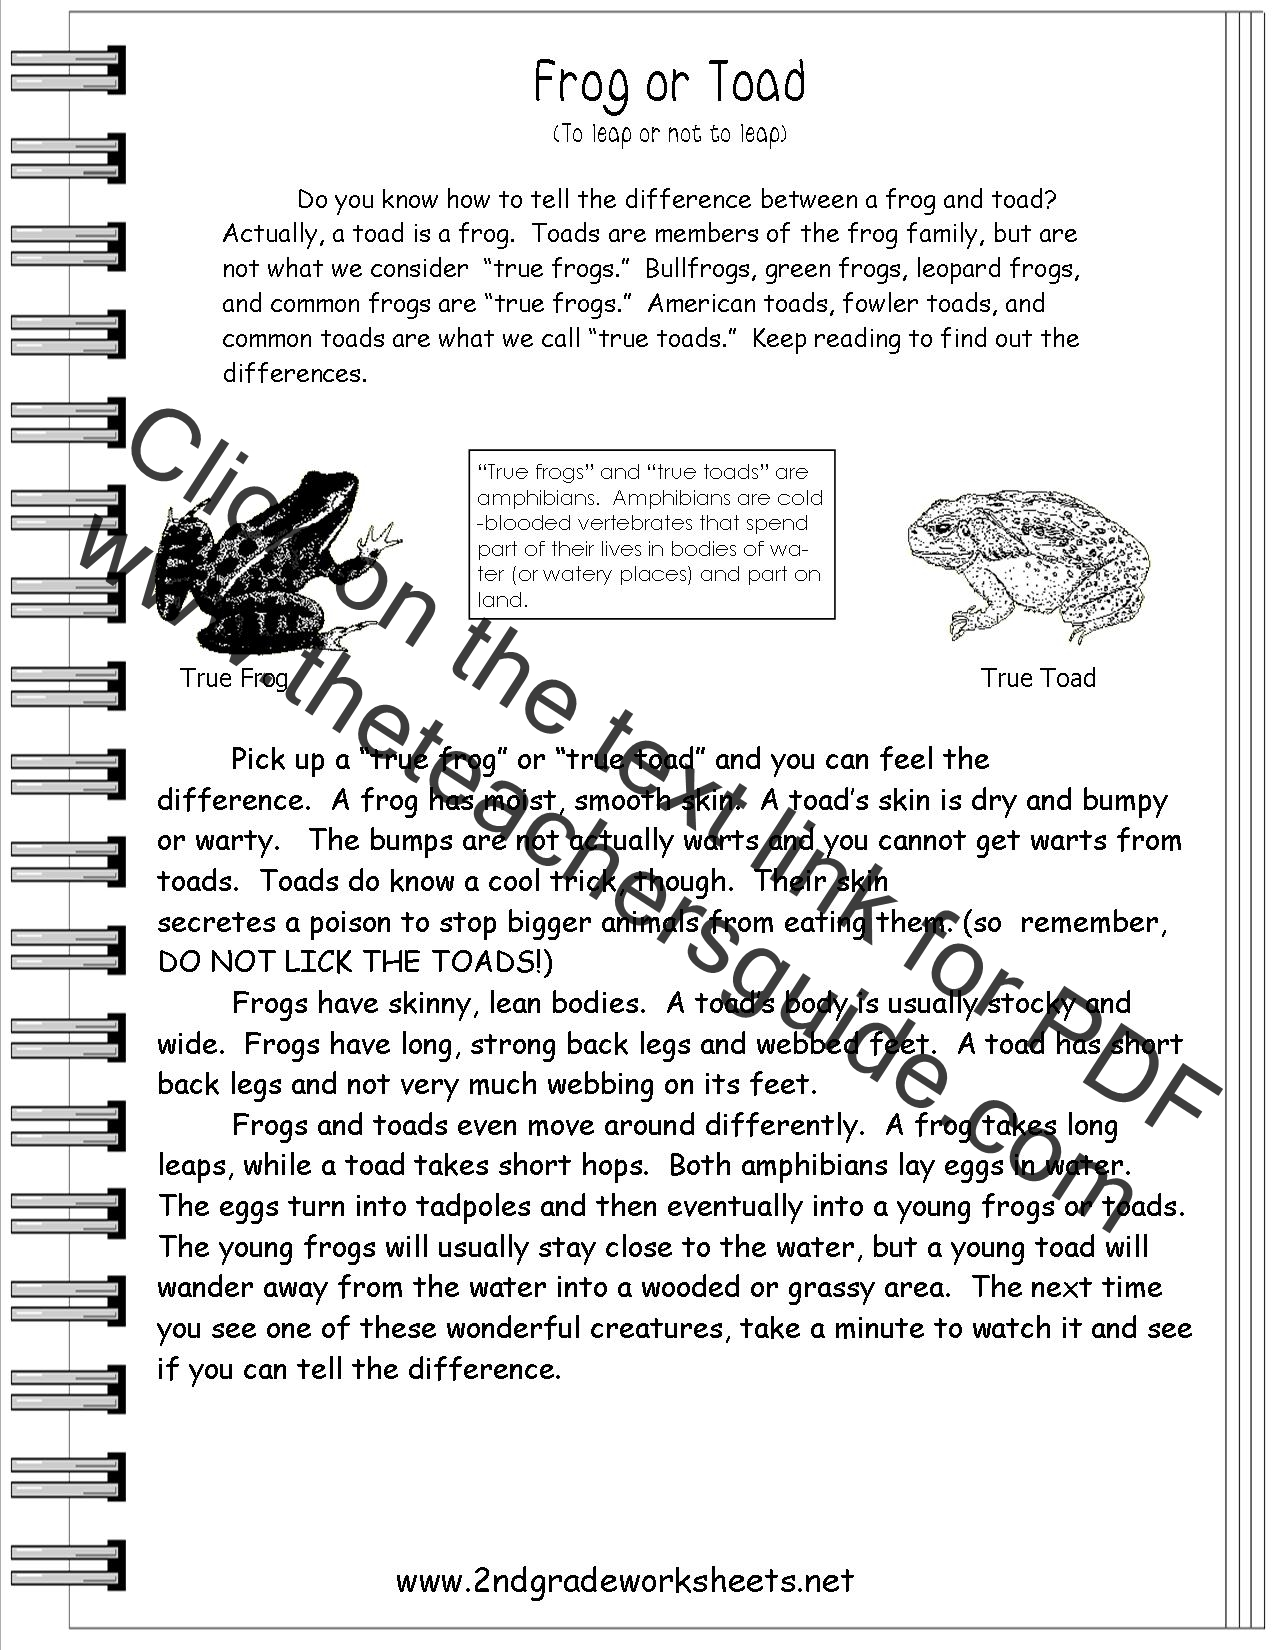 Reading informational text worksheets frog or toad worksheet ibookread Read Online